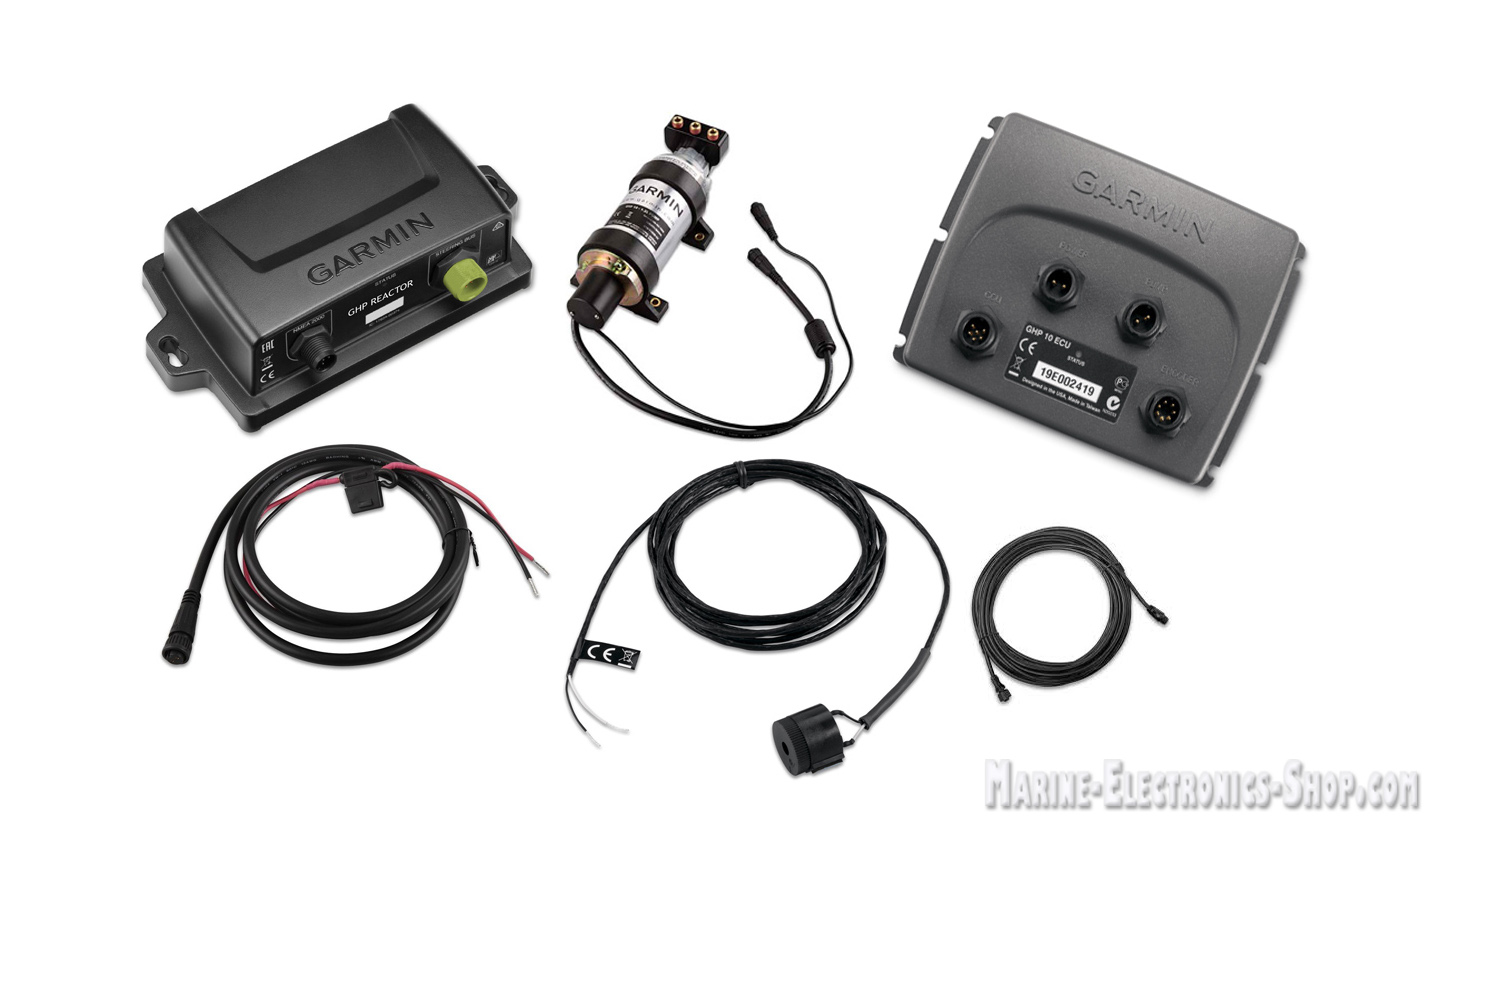 Marine Electronics GHP Compact Reactor Hydraulic Autopilot Starter Pack